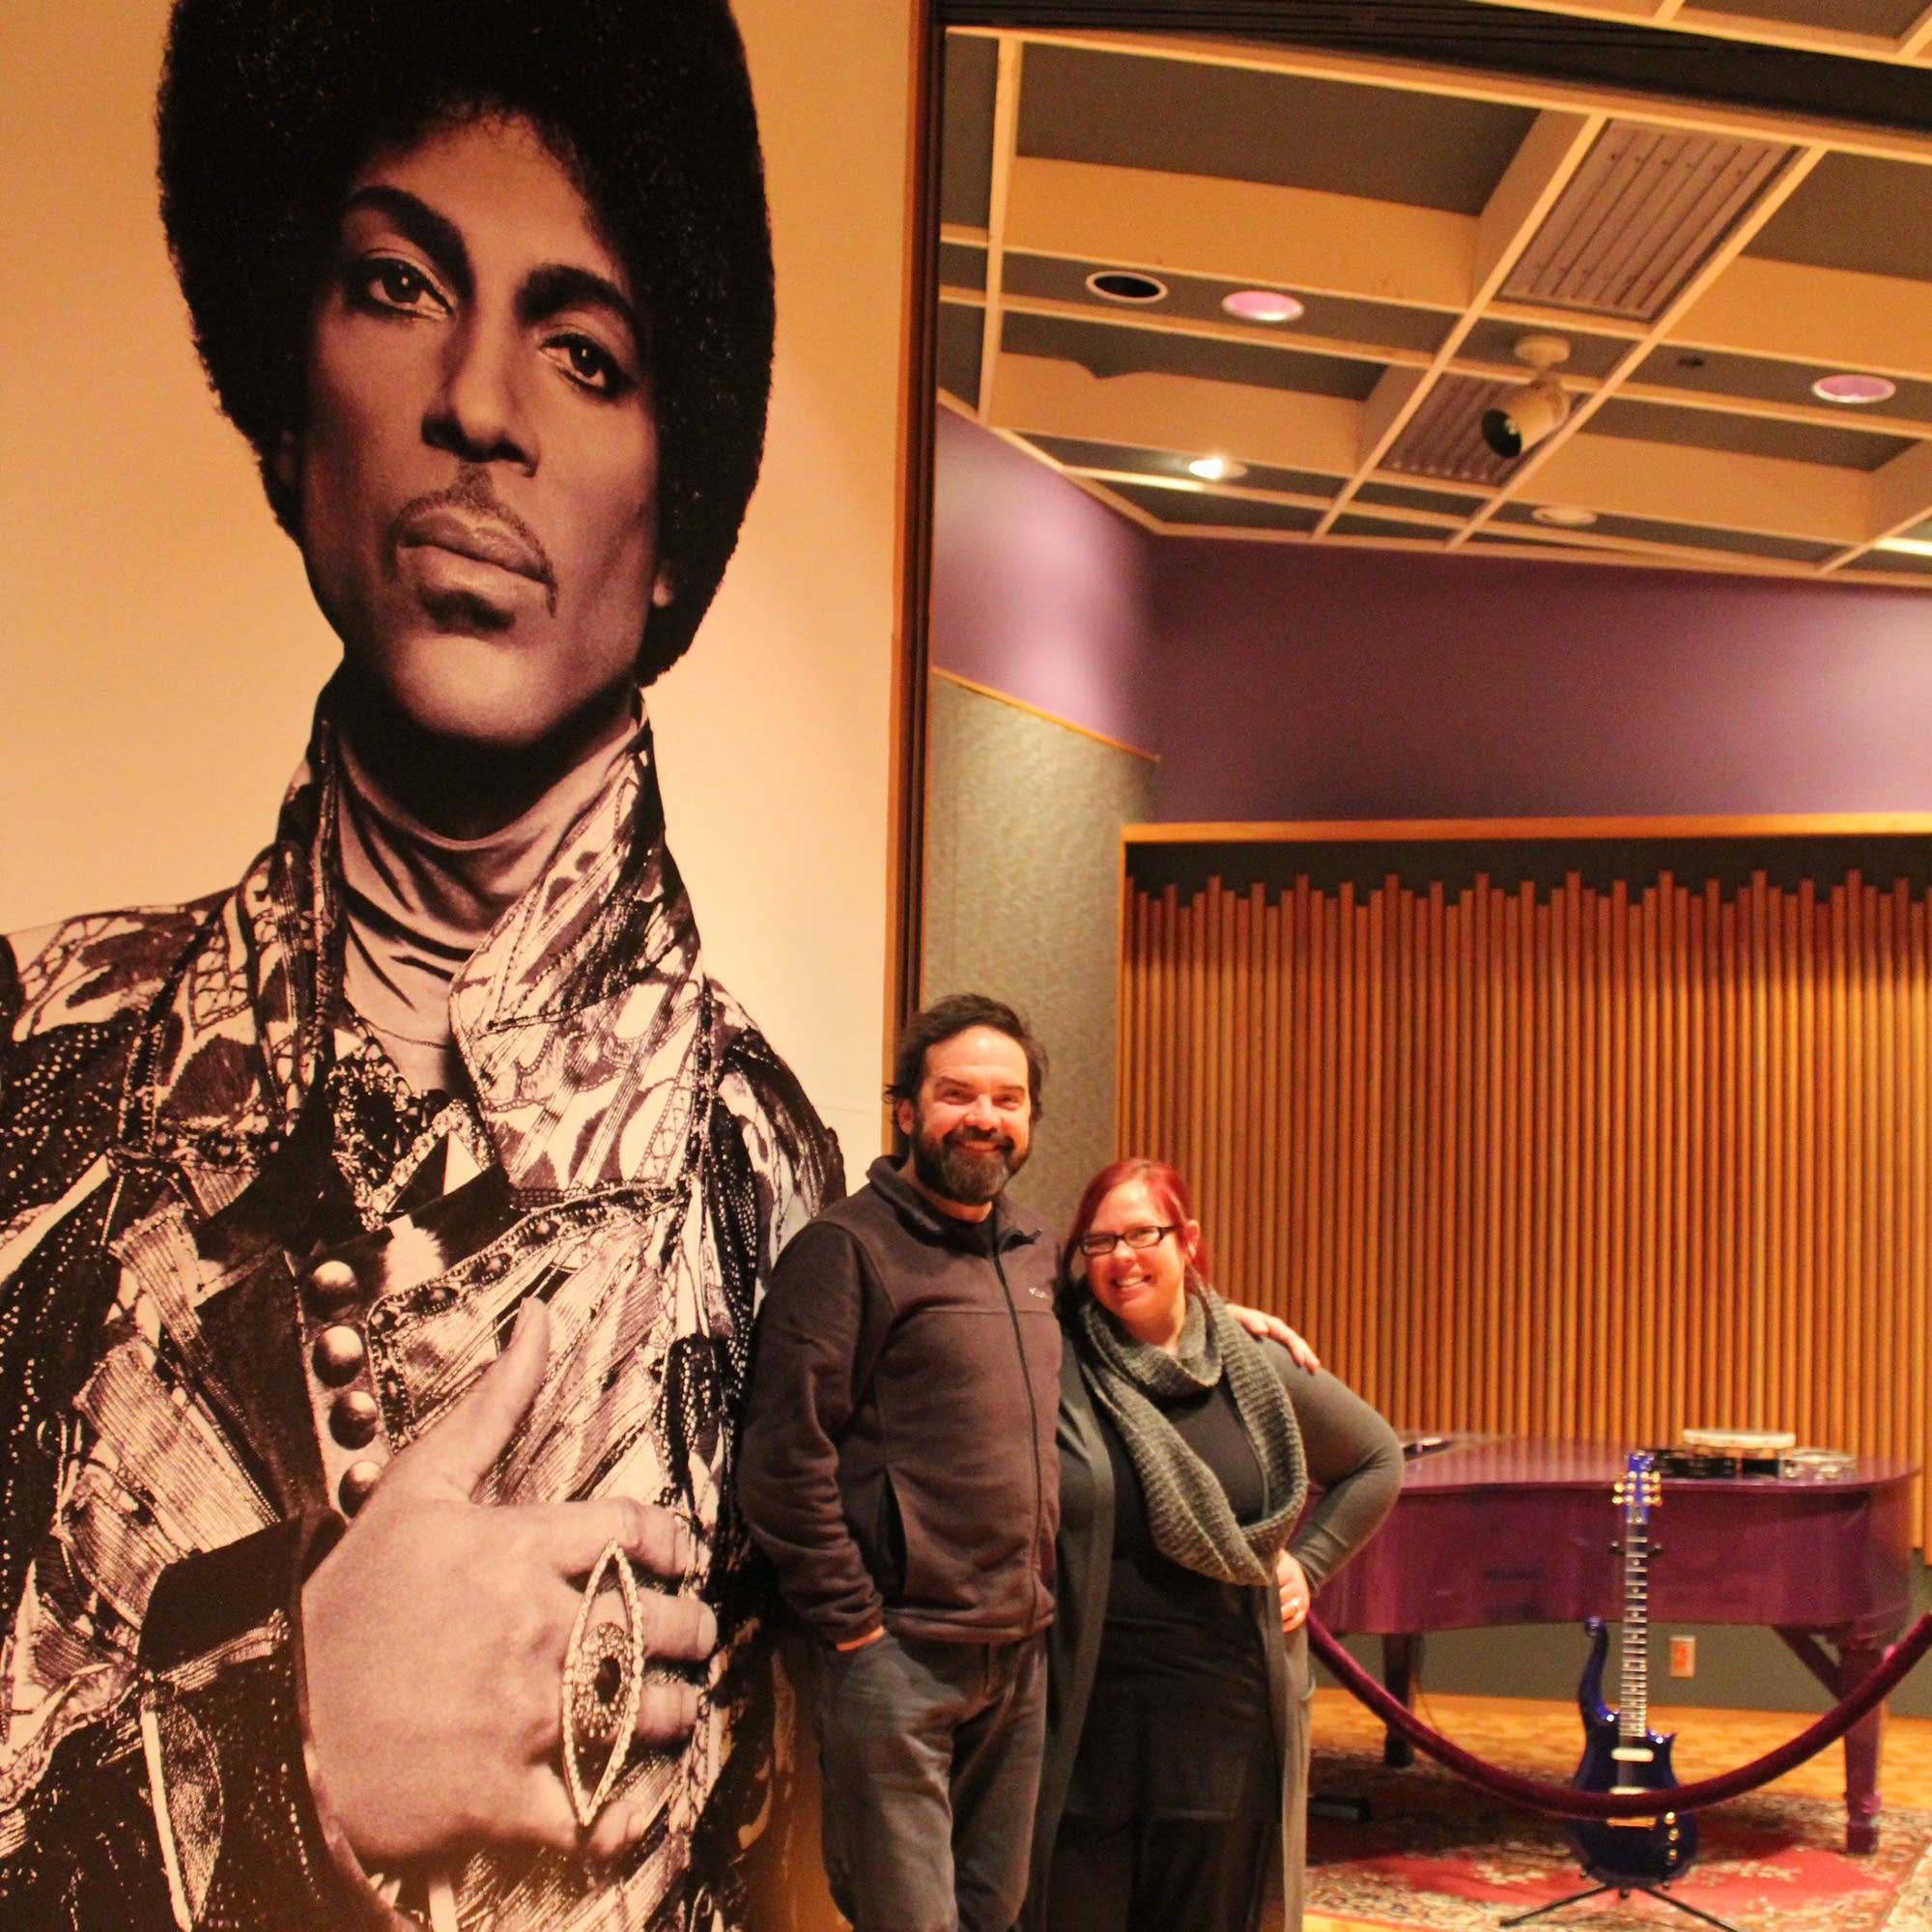 Brian Oake and Jill Riley at Paisley Park